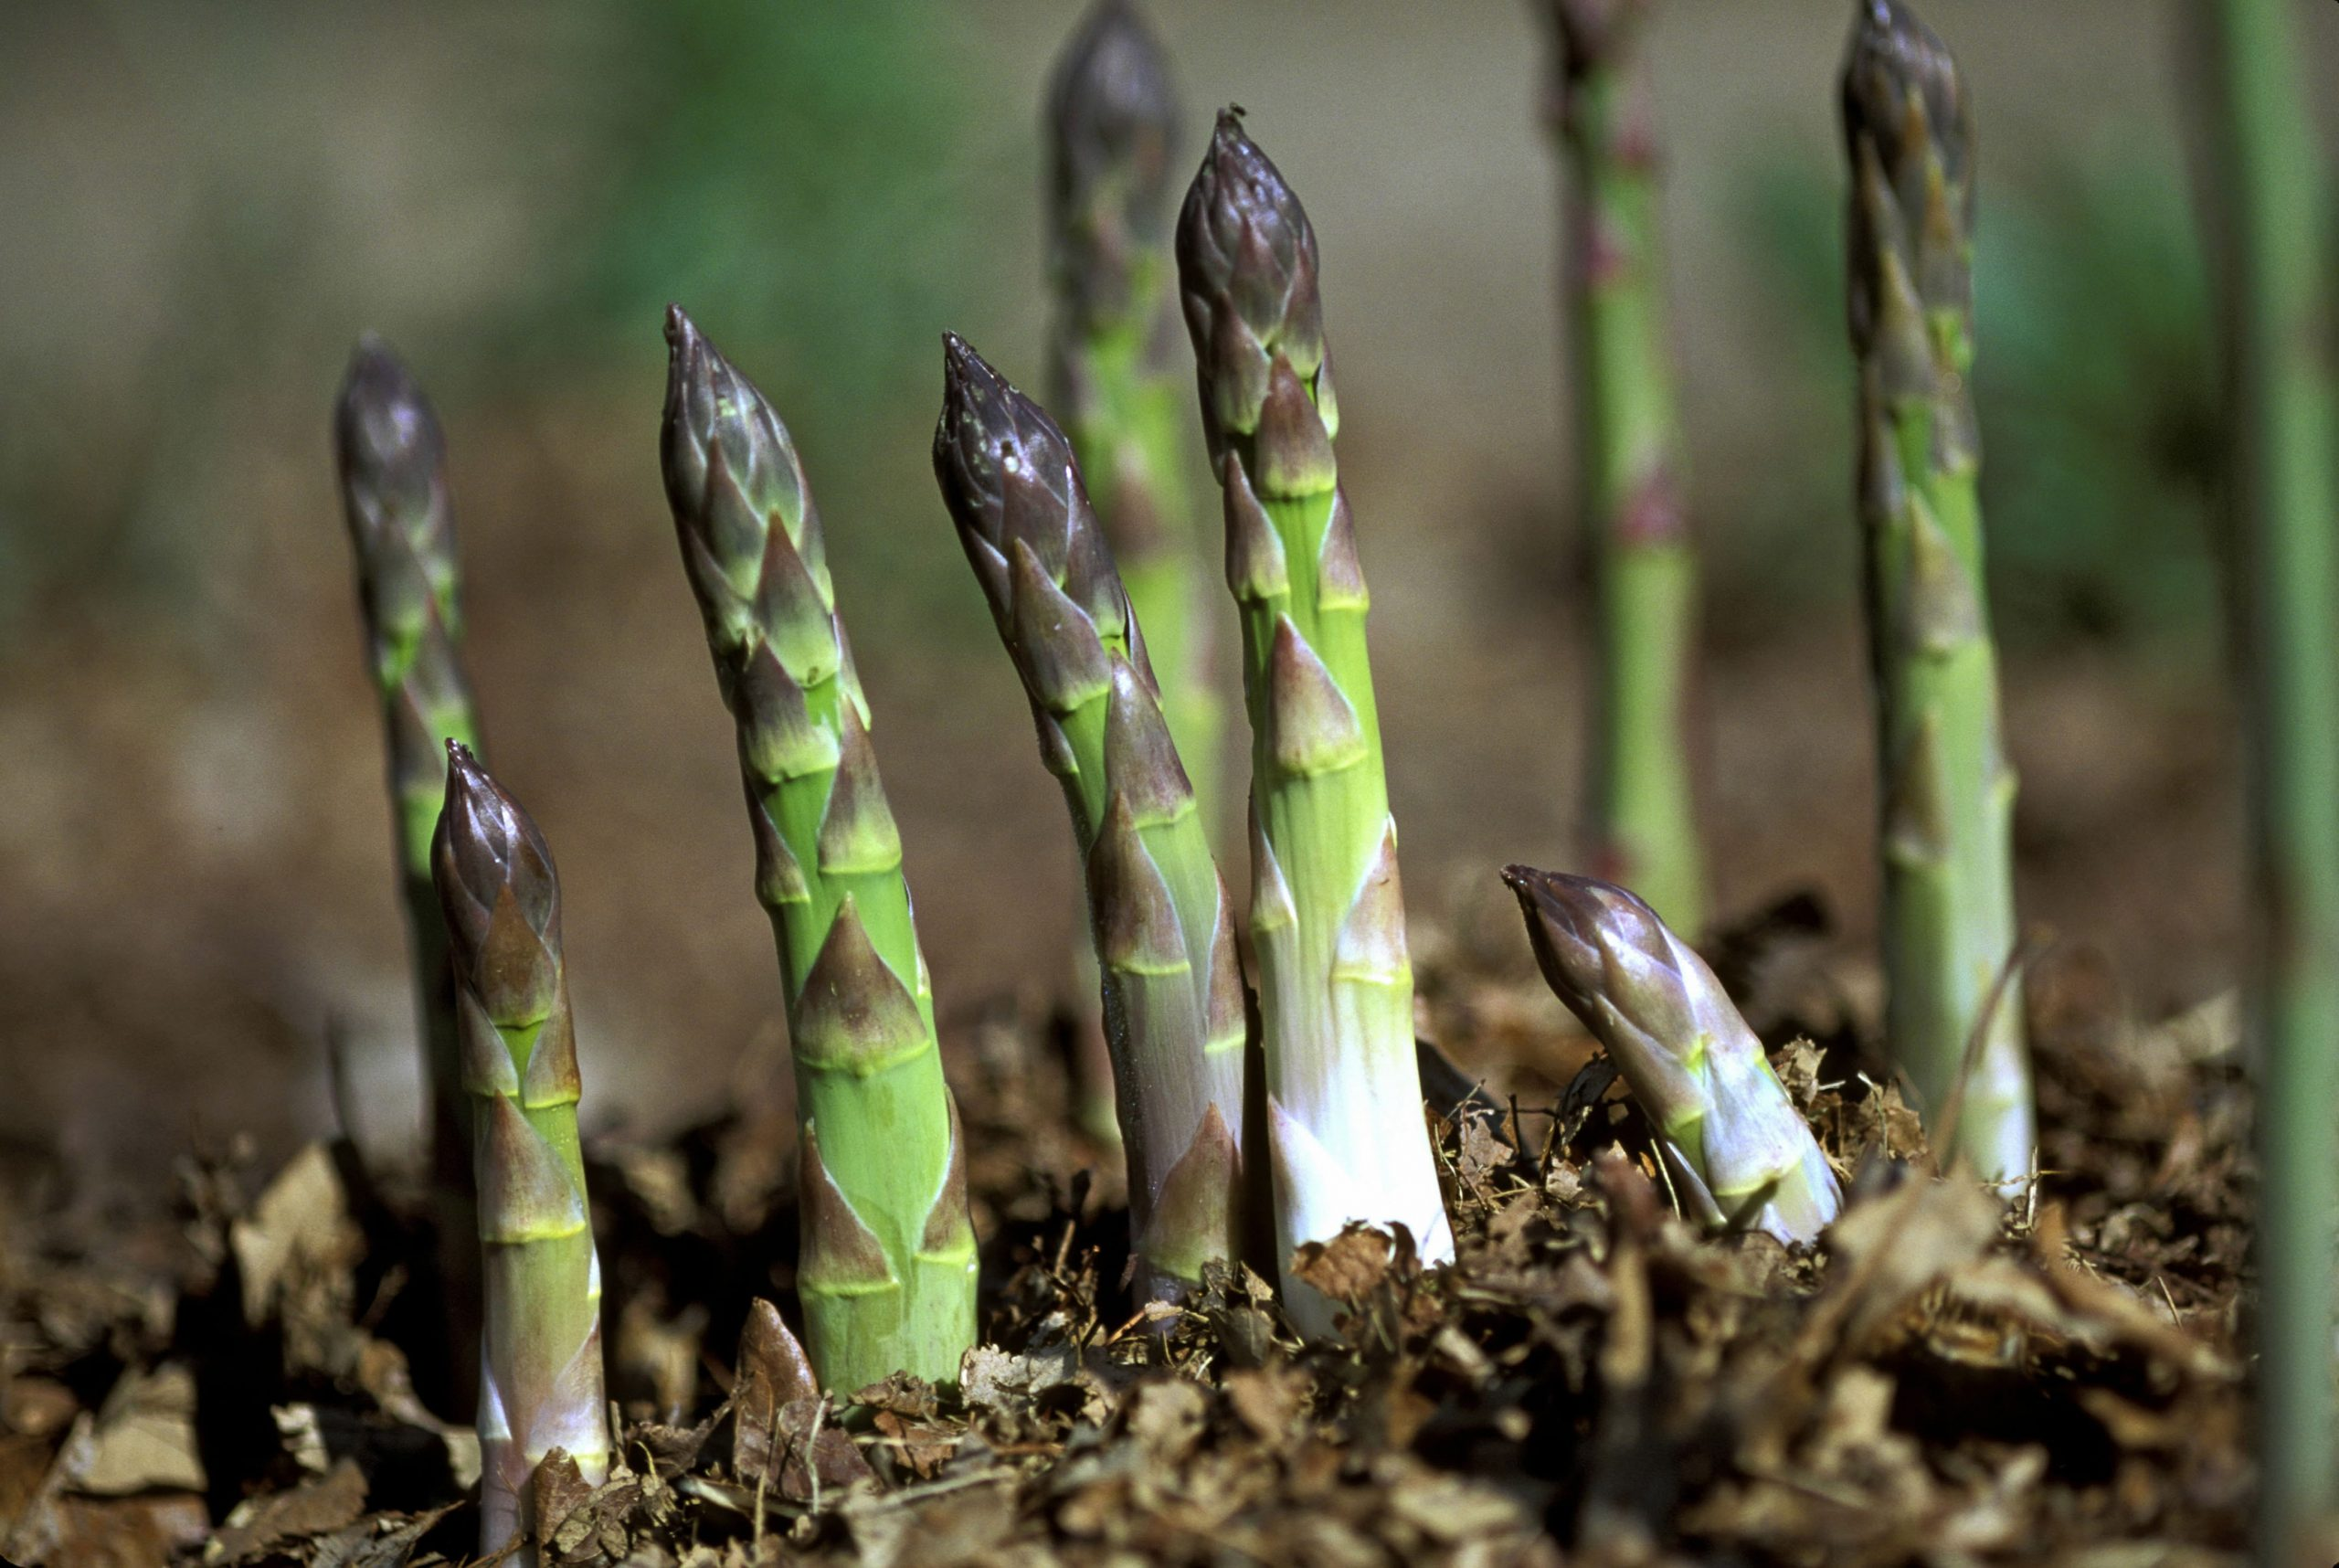 How To Grow Asparagus The Mini Vegetable Orchard Which Pokes Its Head Out In Spring Looking For Love Country Life